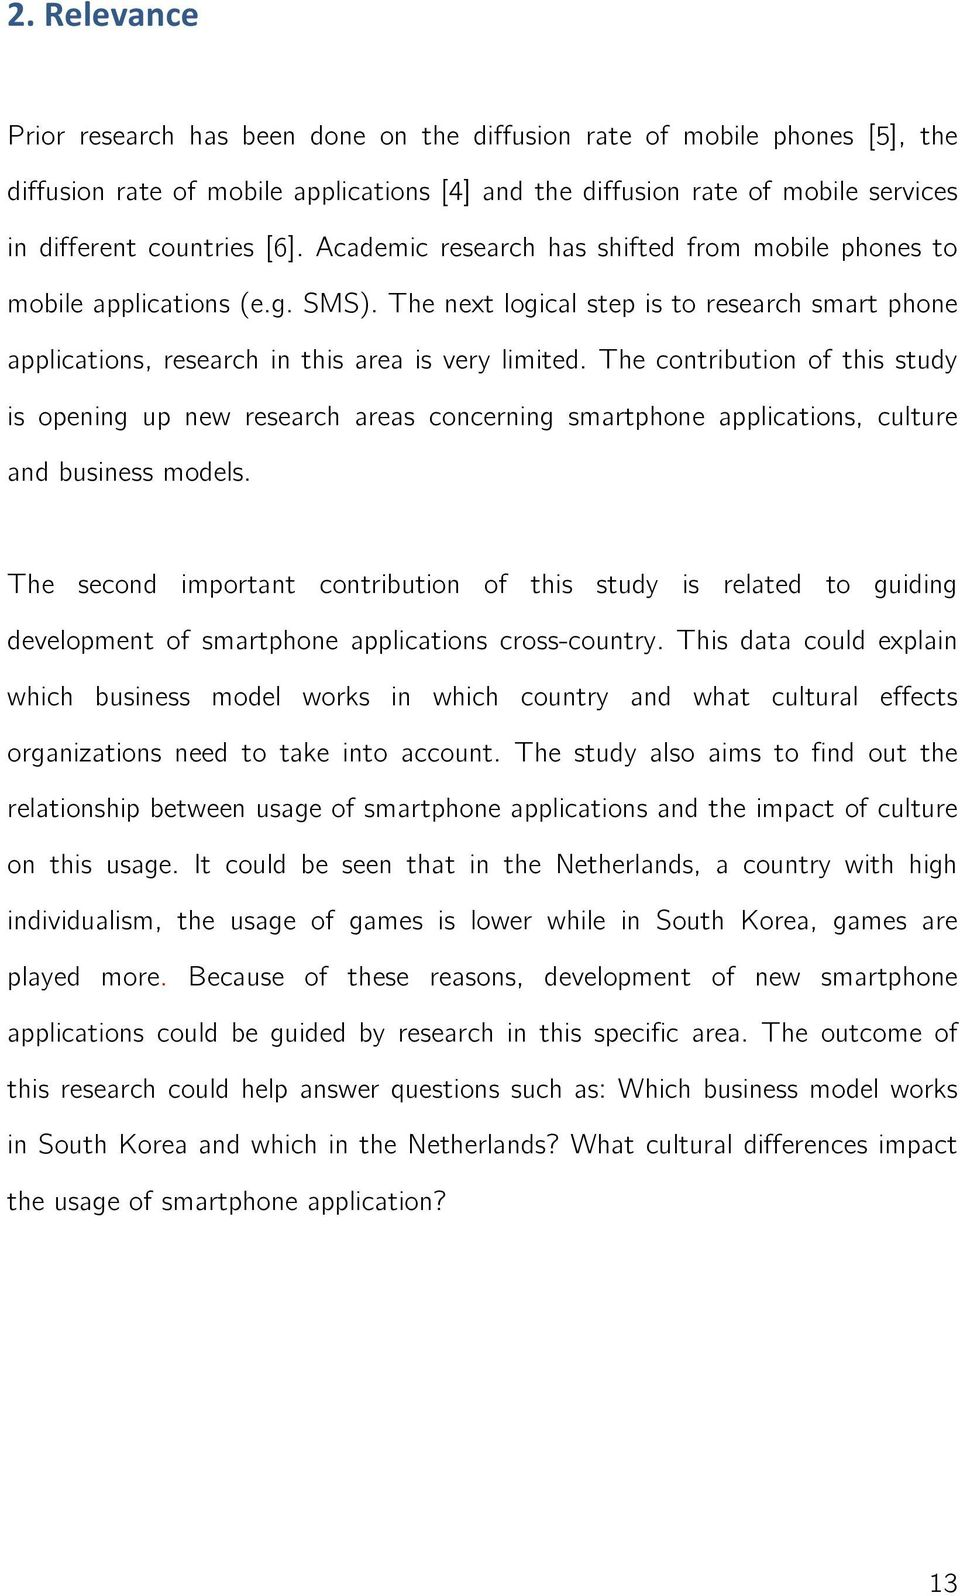 The contribution of this study is opening up new research areas concerning smartphone applications, culture and business models.